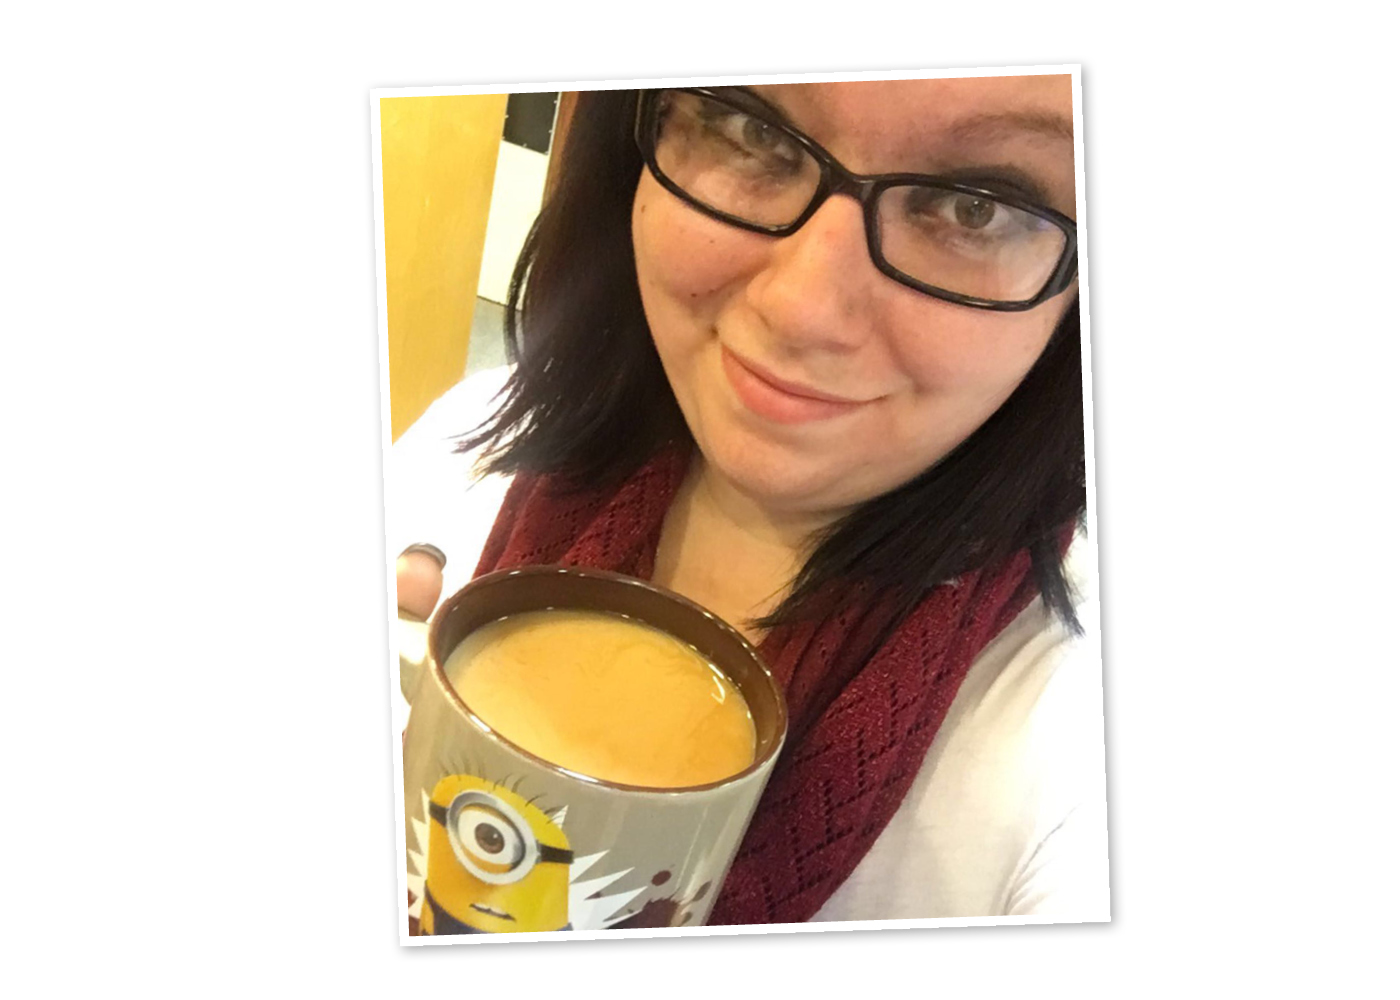 Katie showing off her Minion love with her favorite mug.